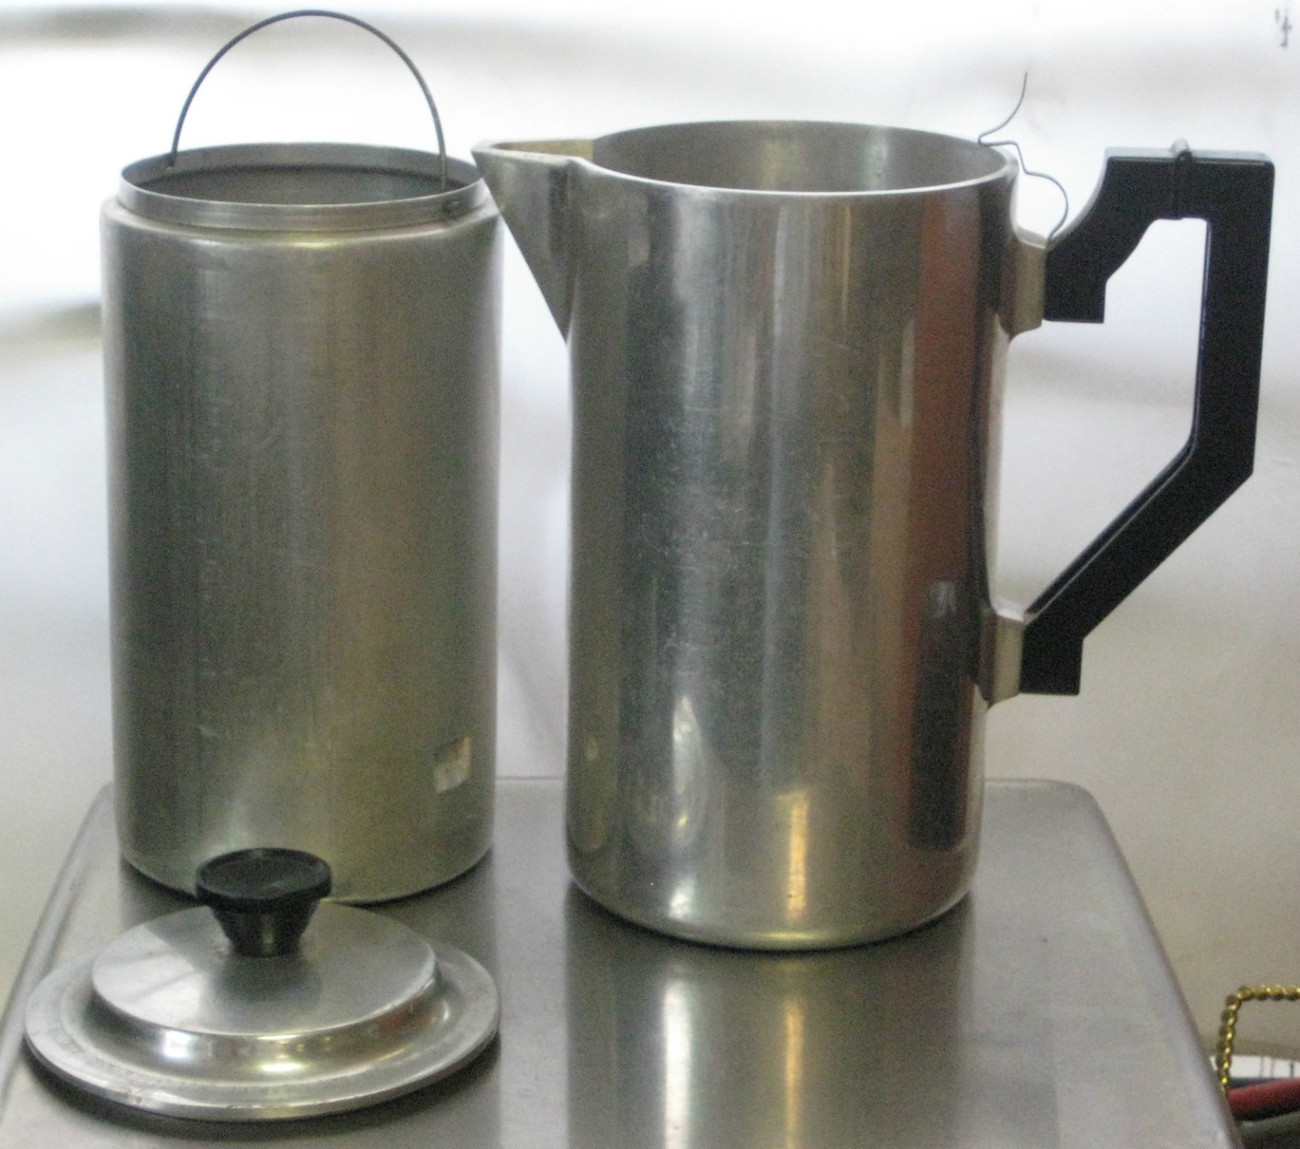 Vintage Aluminum Miracle Maid CAMPING COOKWARE Stove Top Coffee Maker Pot - Other